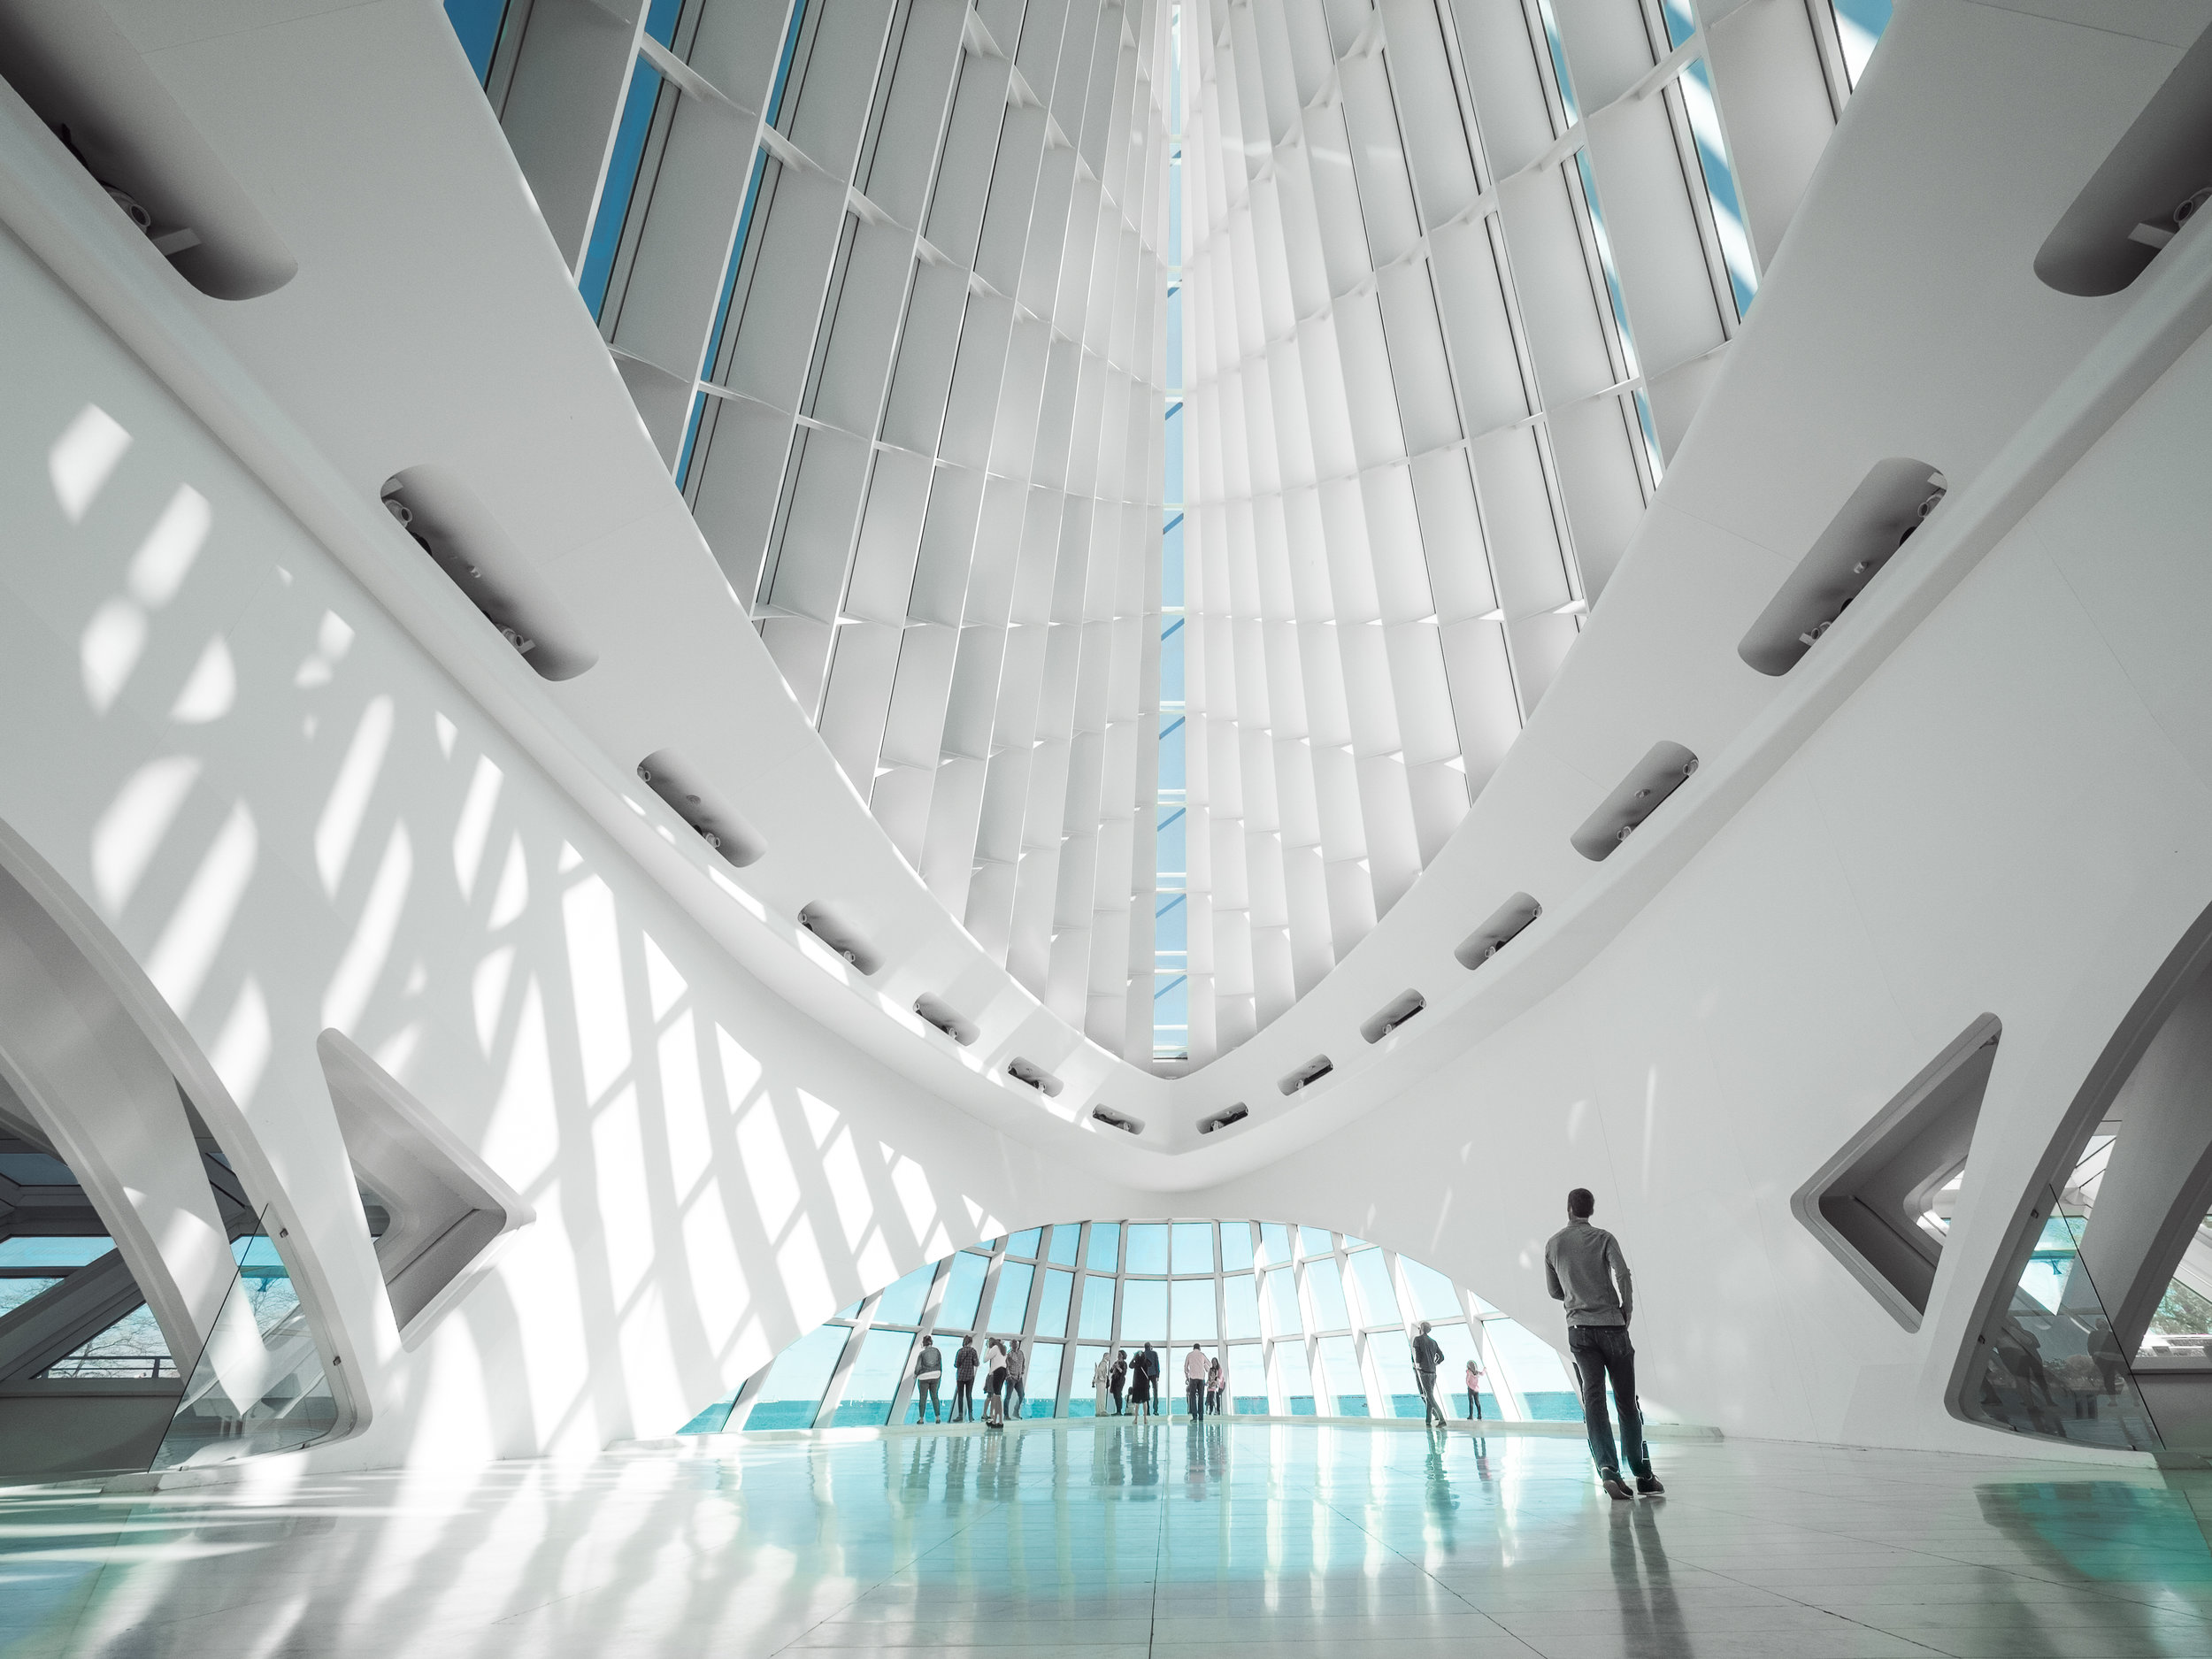 This image of the Milwaukee Art Museum was edited using a beta version of ON1 RAW 2018